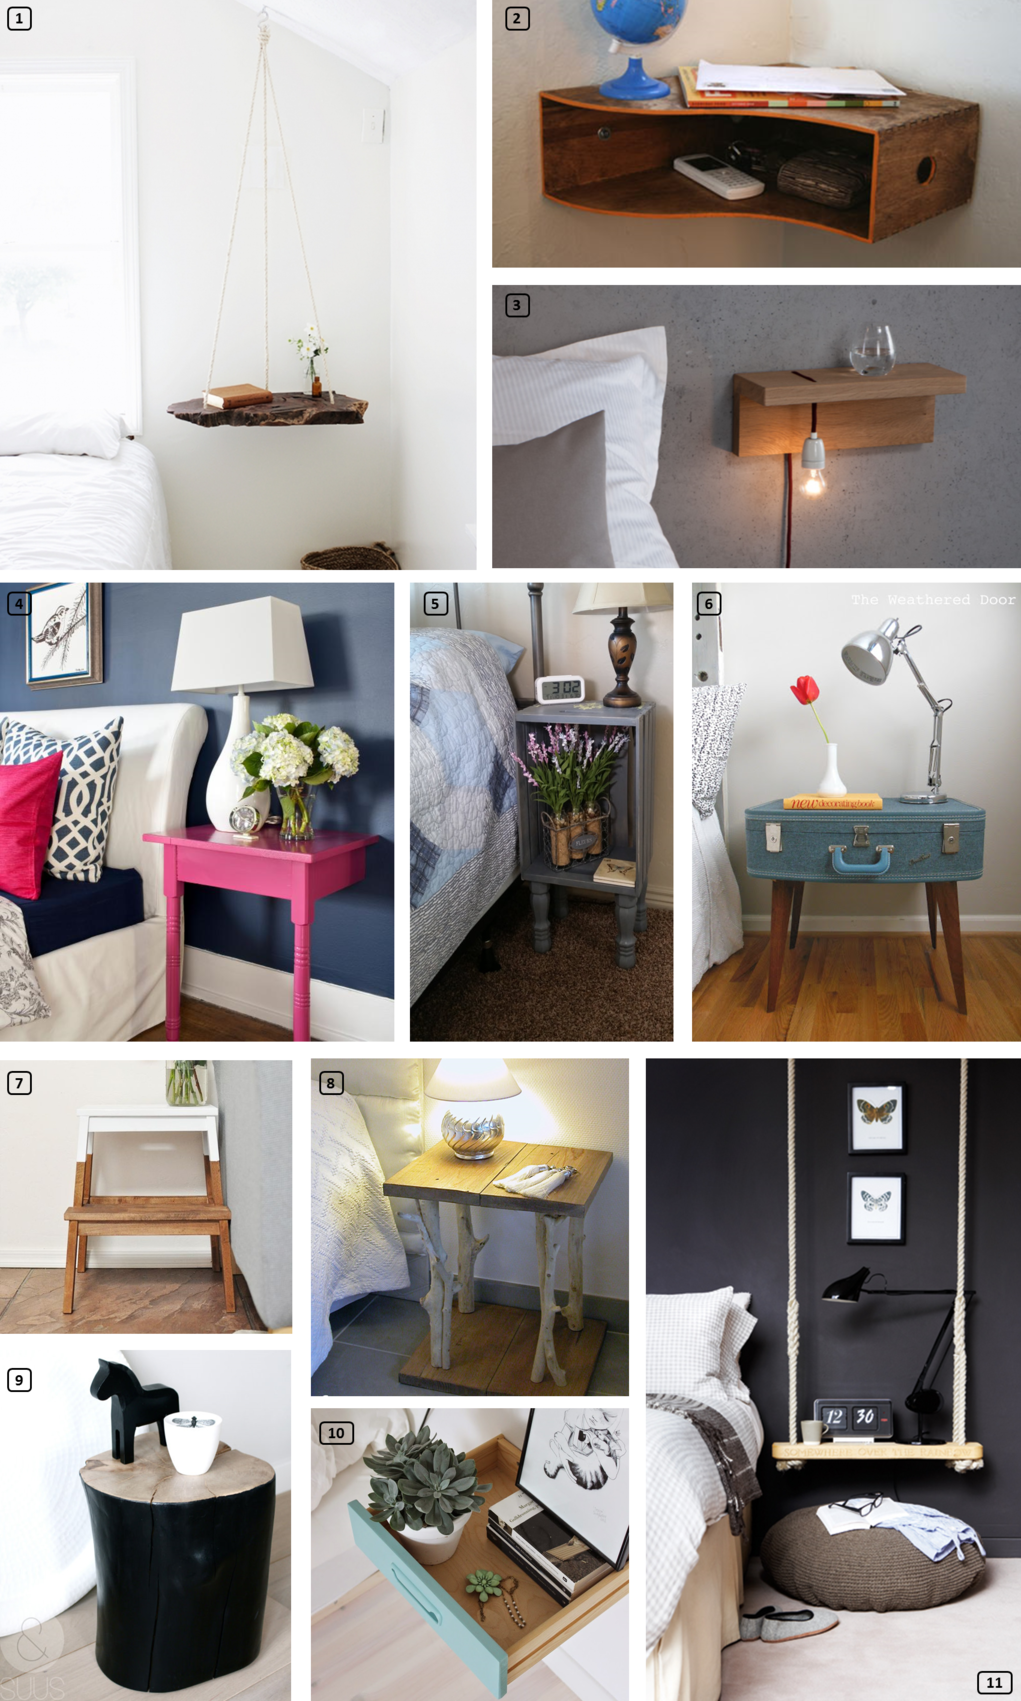 23 Creative Bedside Tables For Your Rental Bnbstaging Le Blog